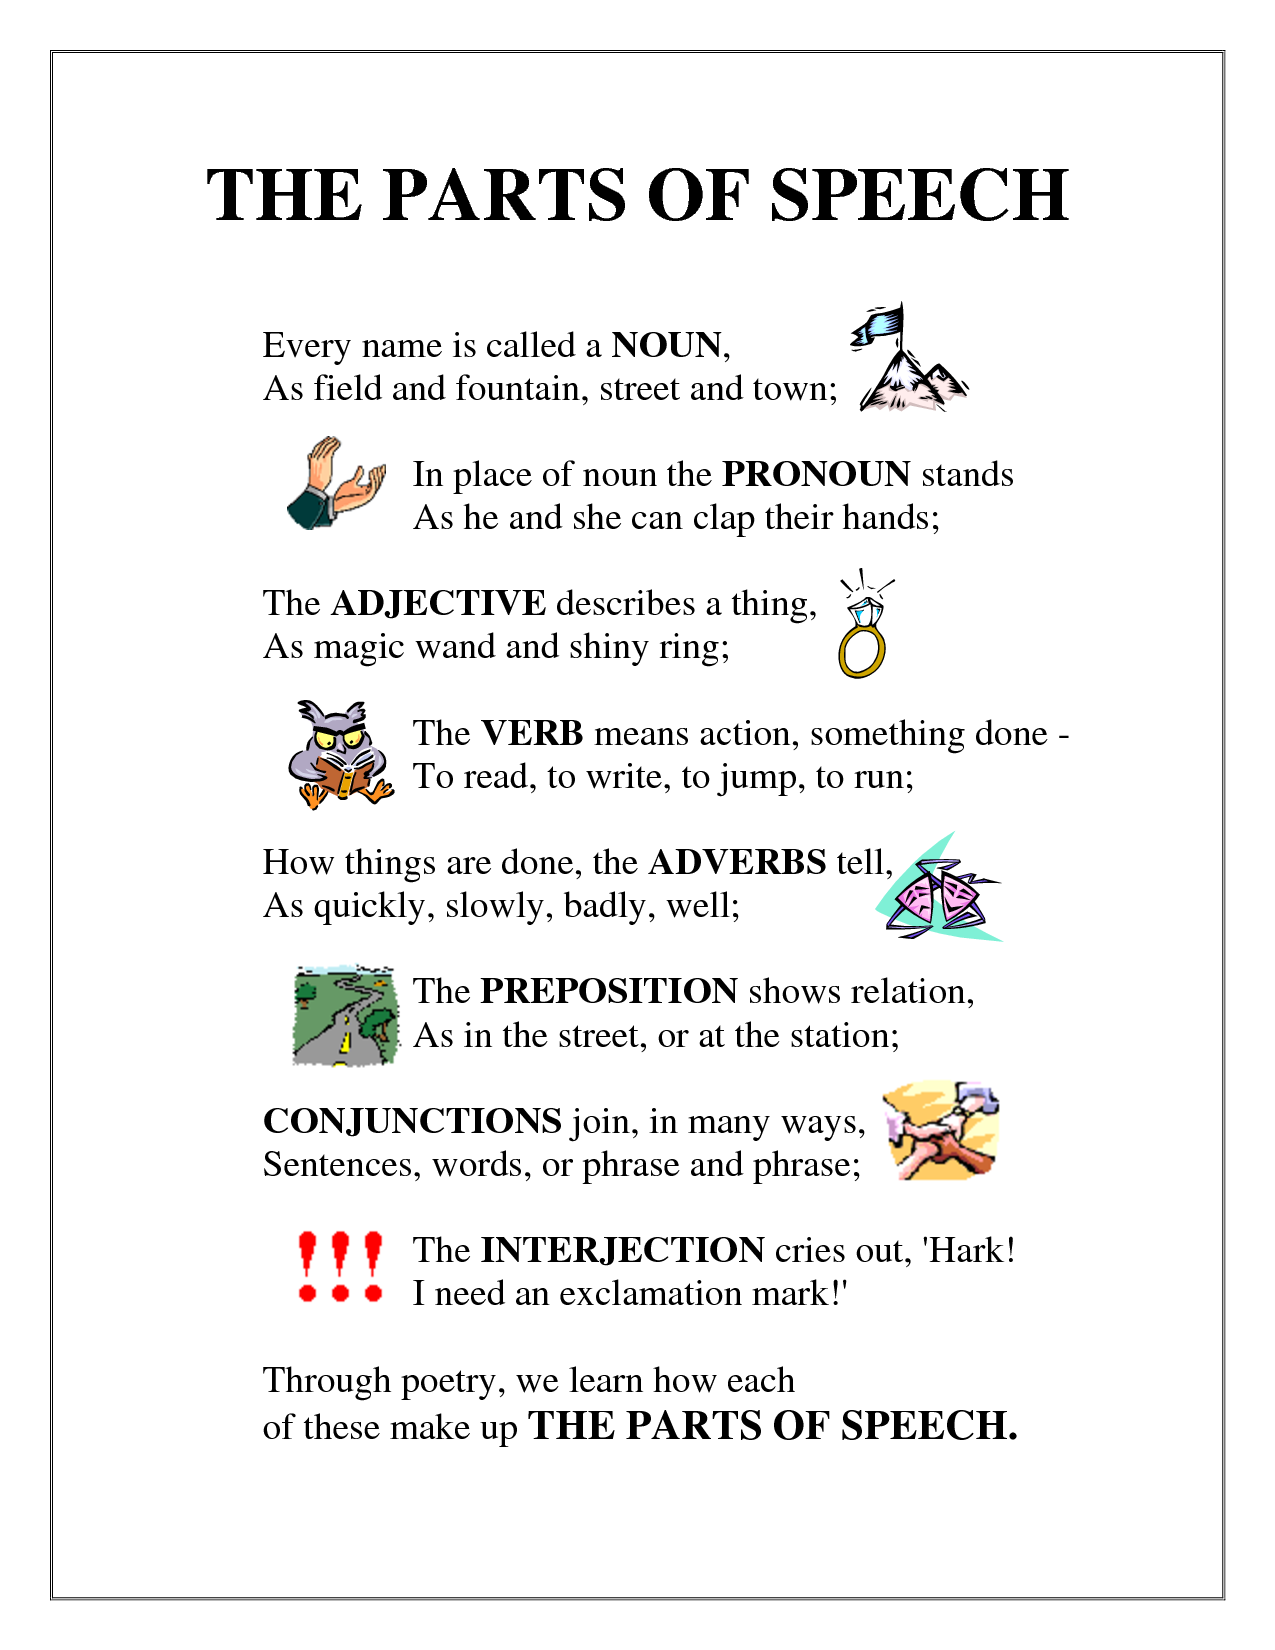 Parts of Speech Poem